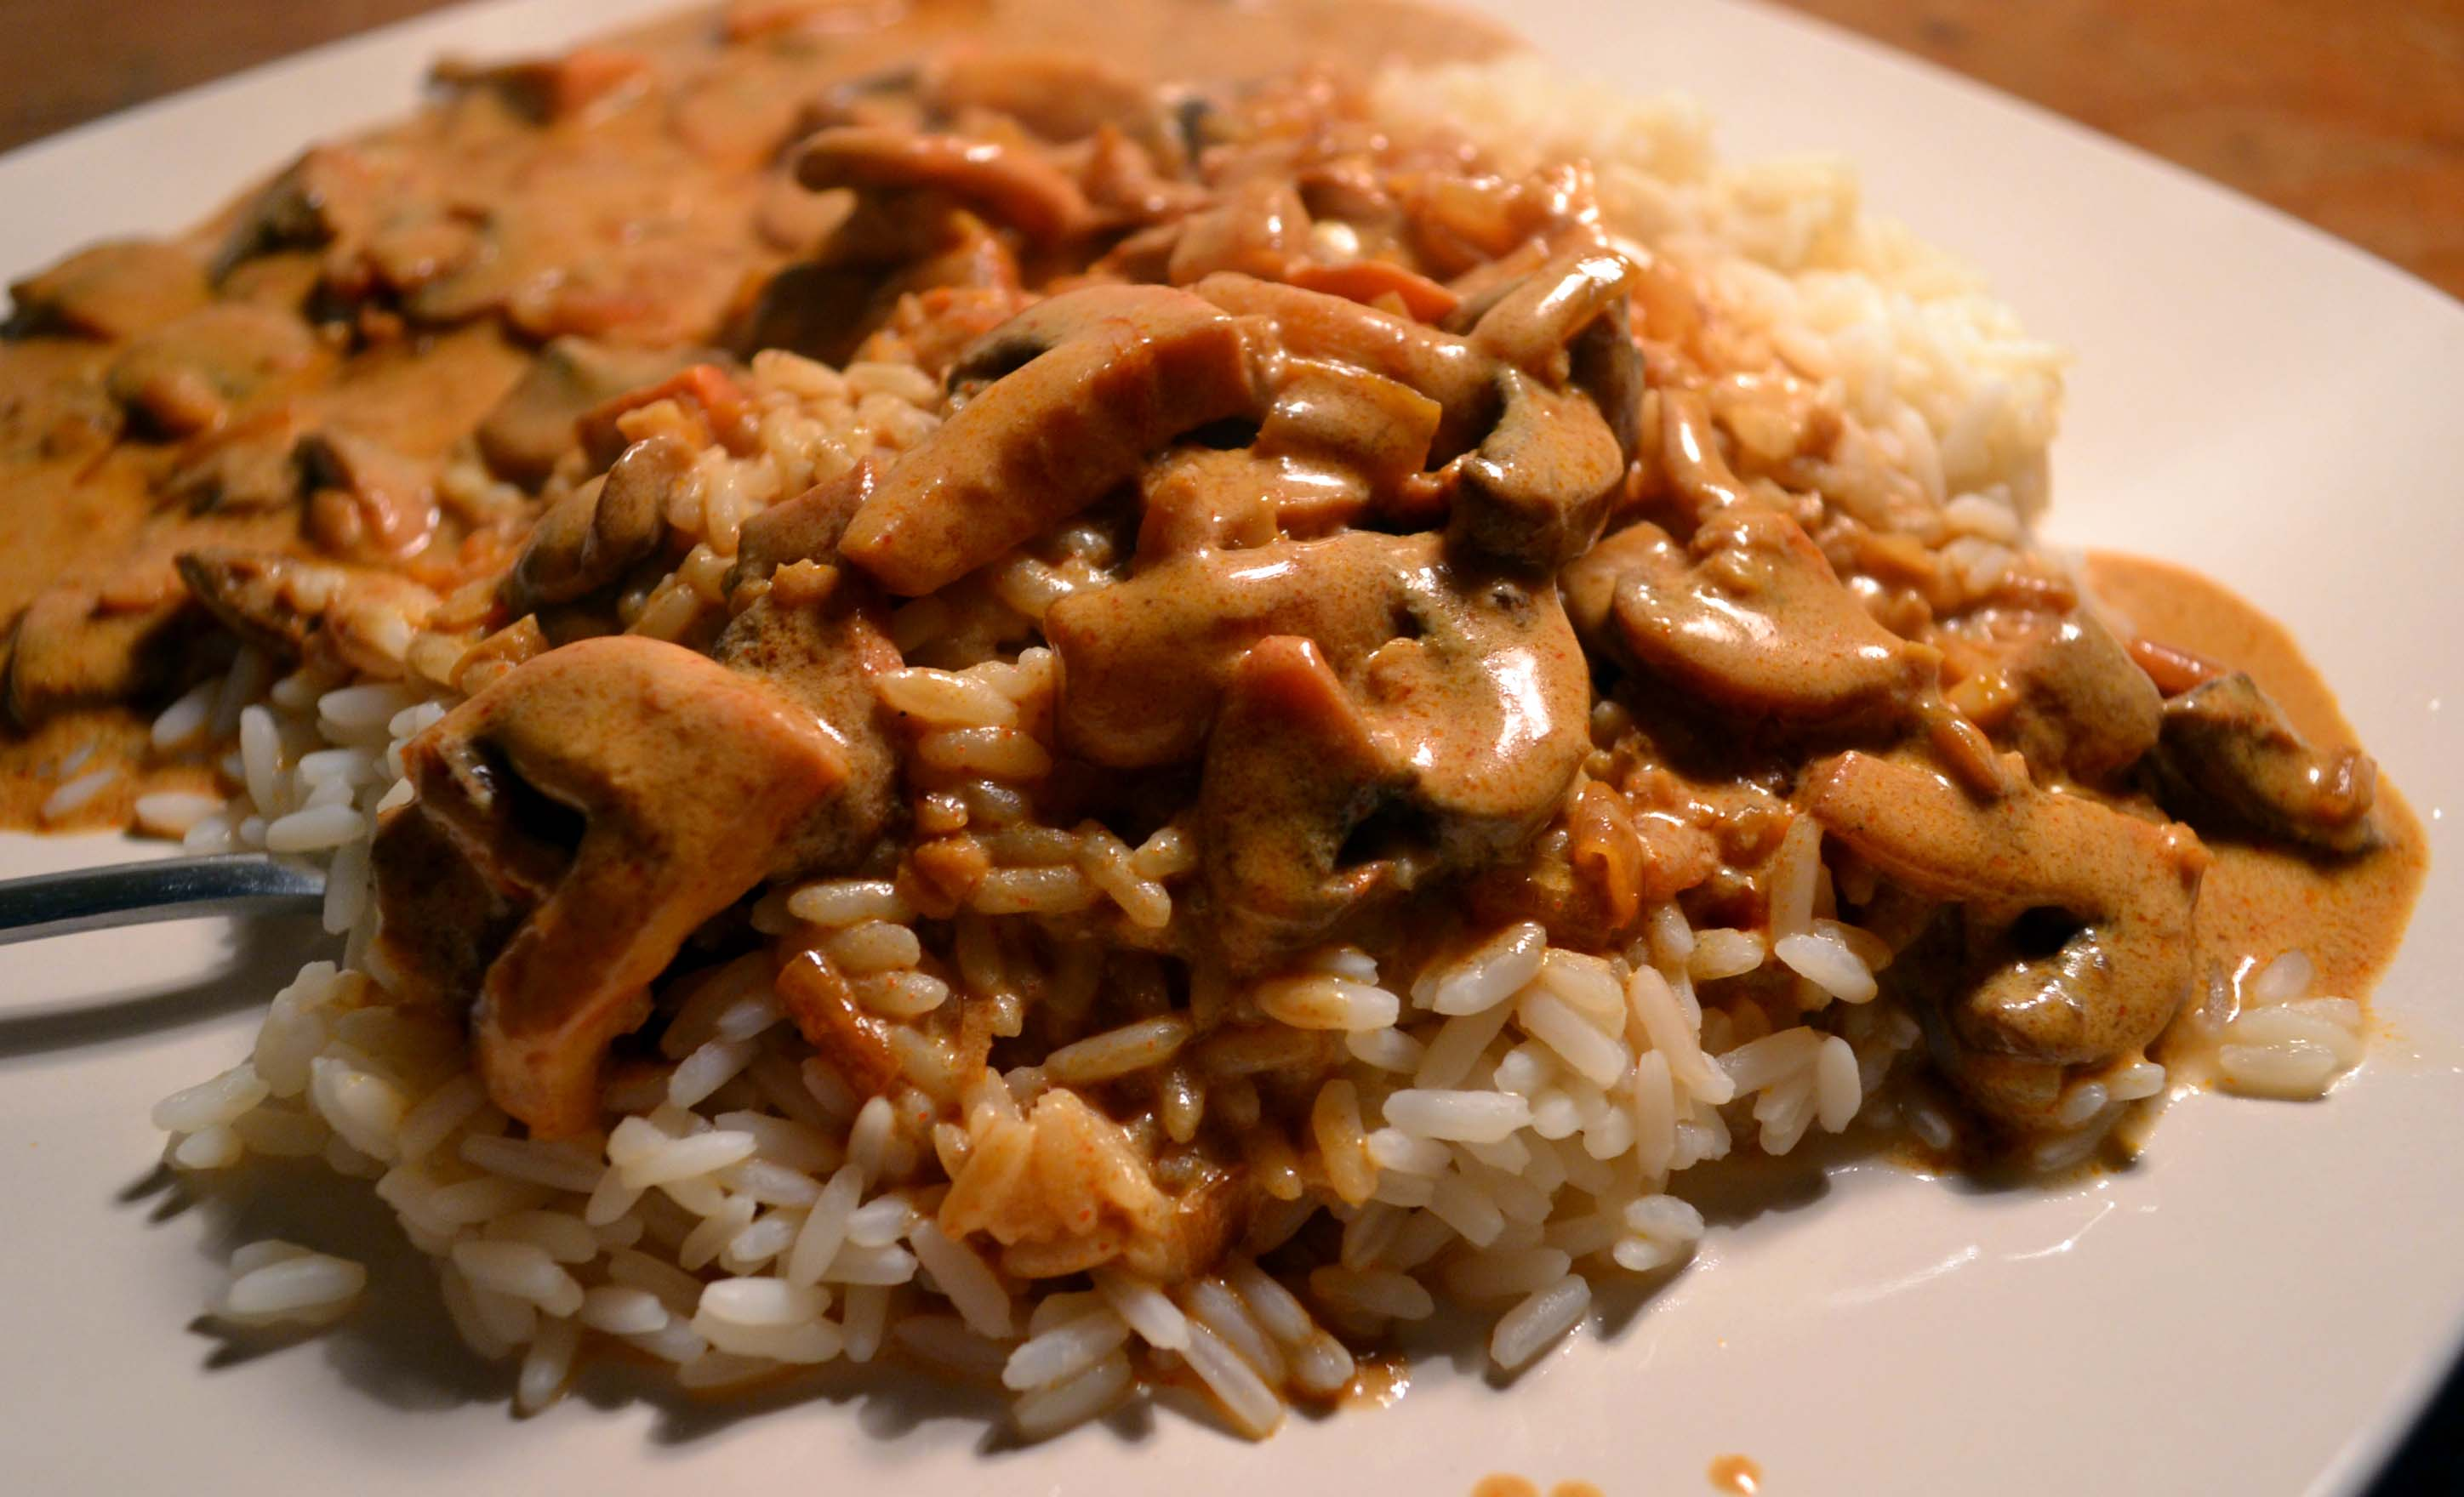 Recipe #14: Super speedy mushroom stroganoff | My Food Challenge